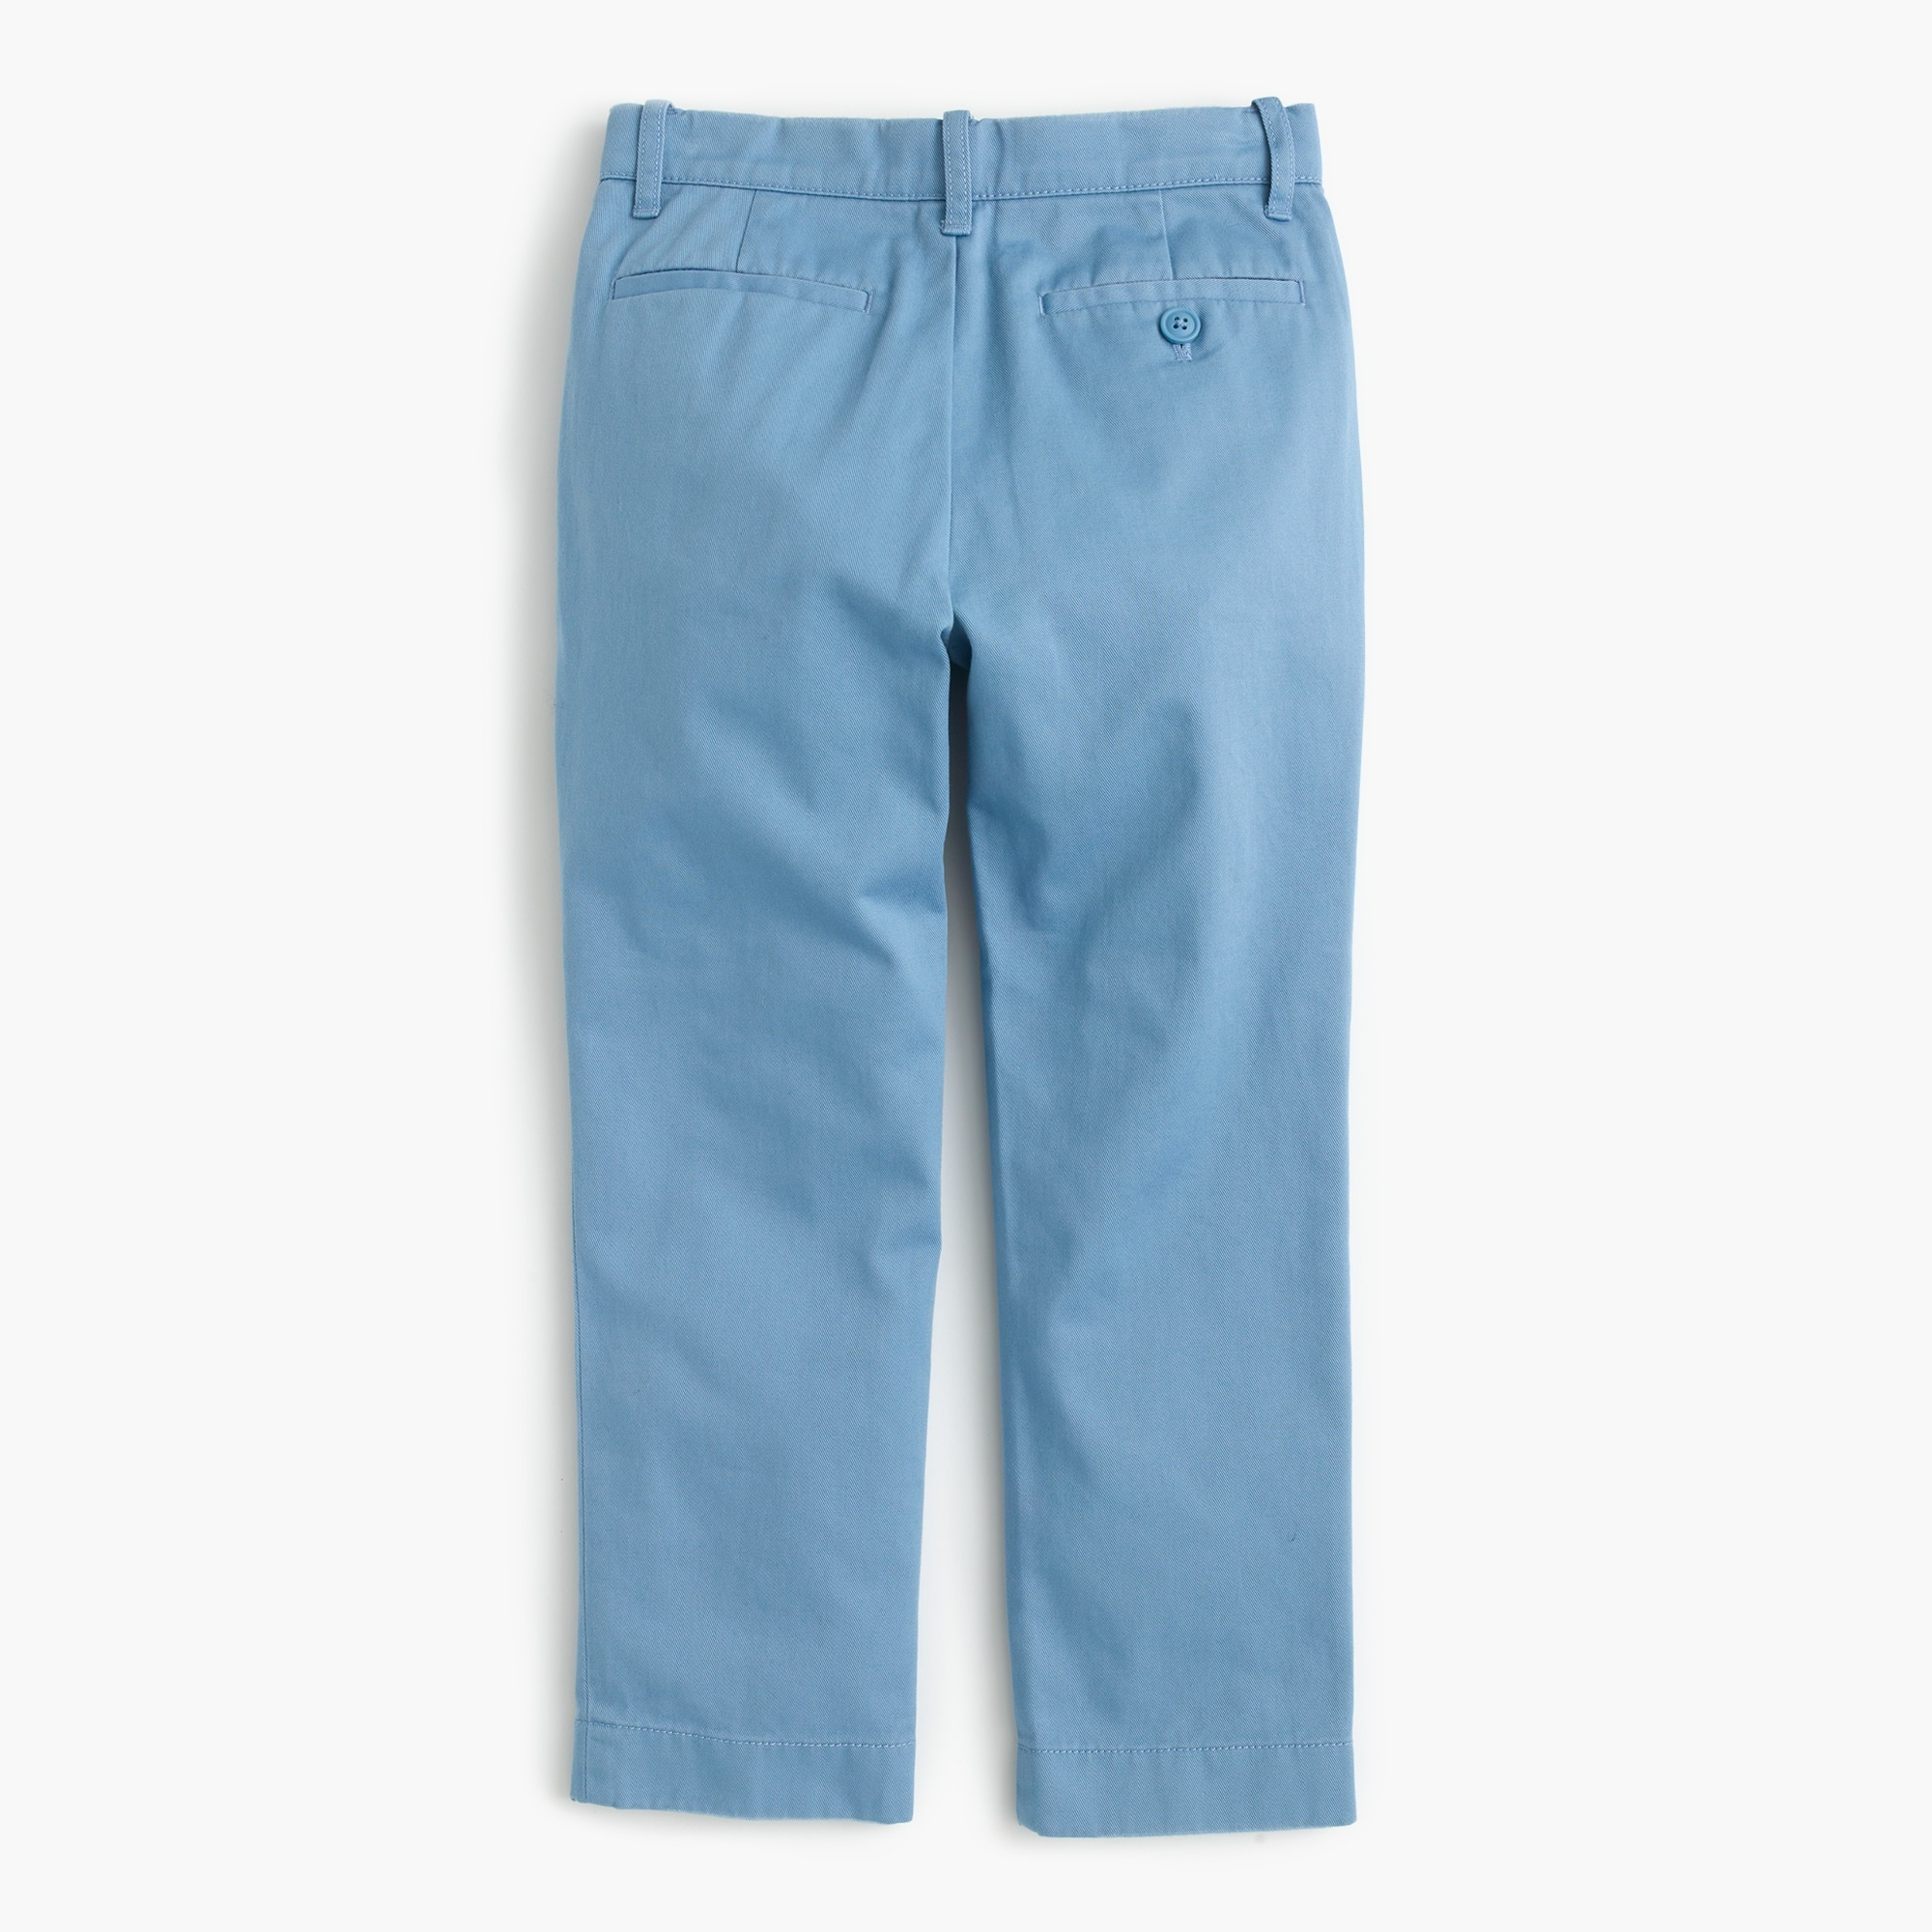 Boys' chino pant in slim fit